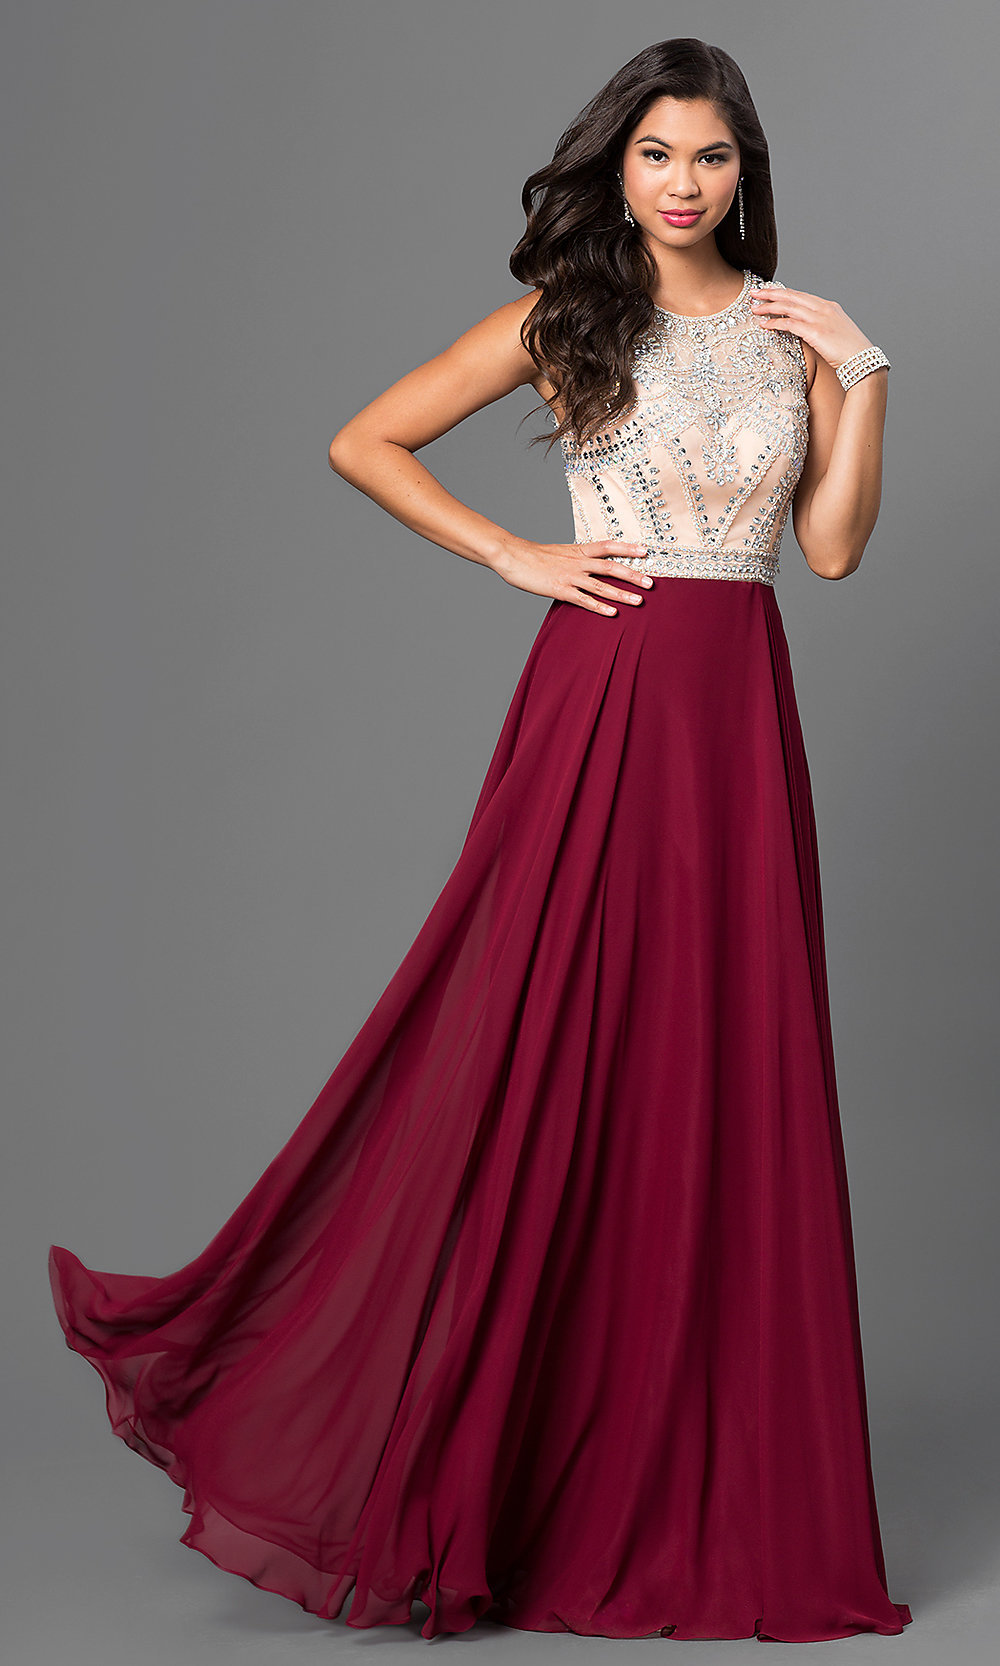 Burgundy Red Beaded Long Prom Dress - PromGirl